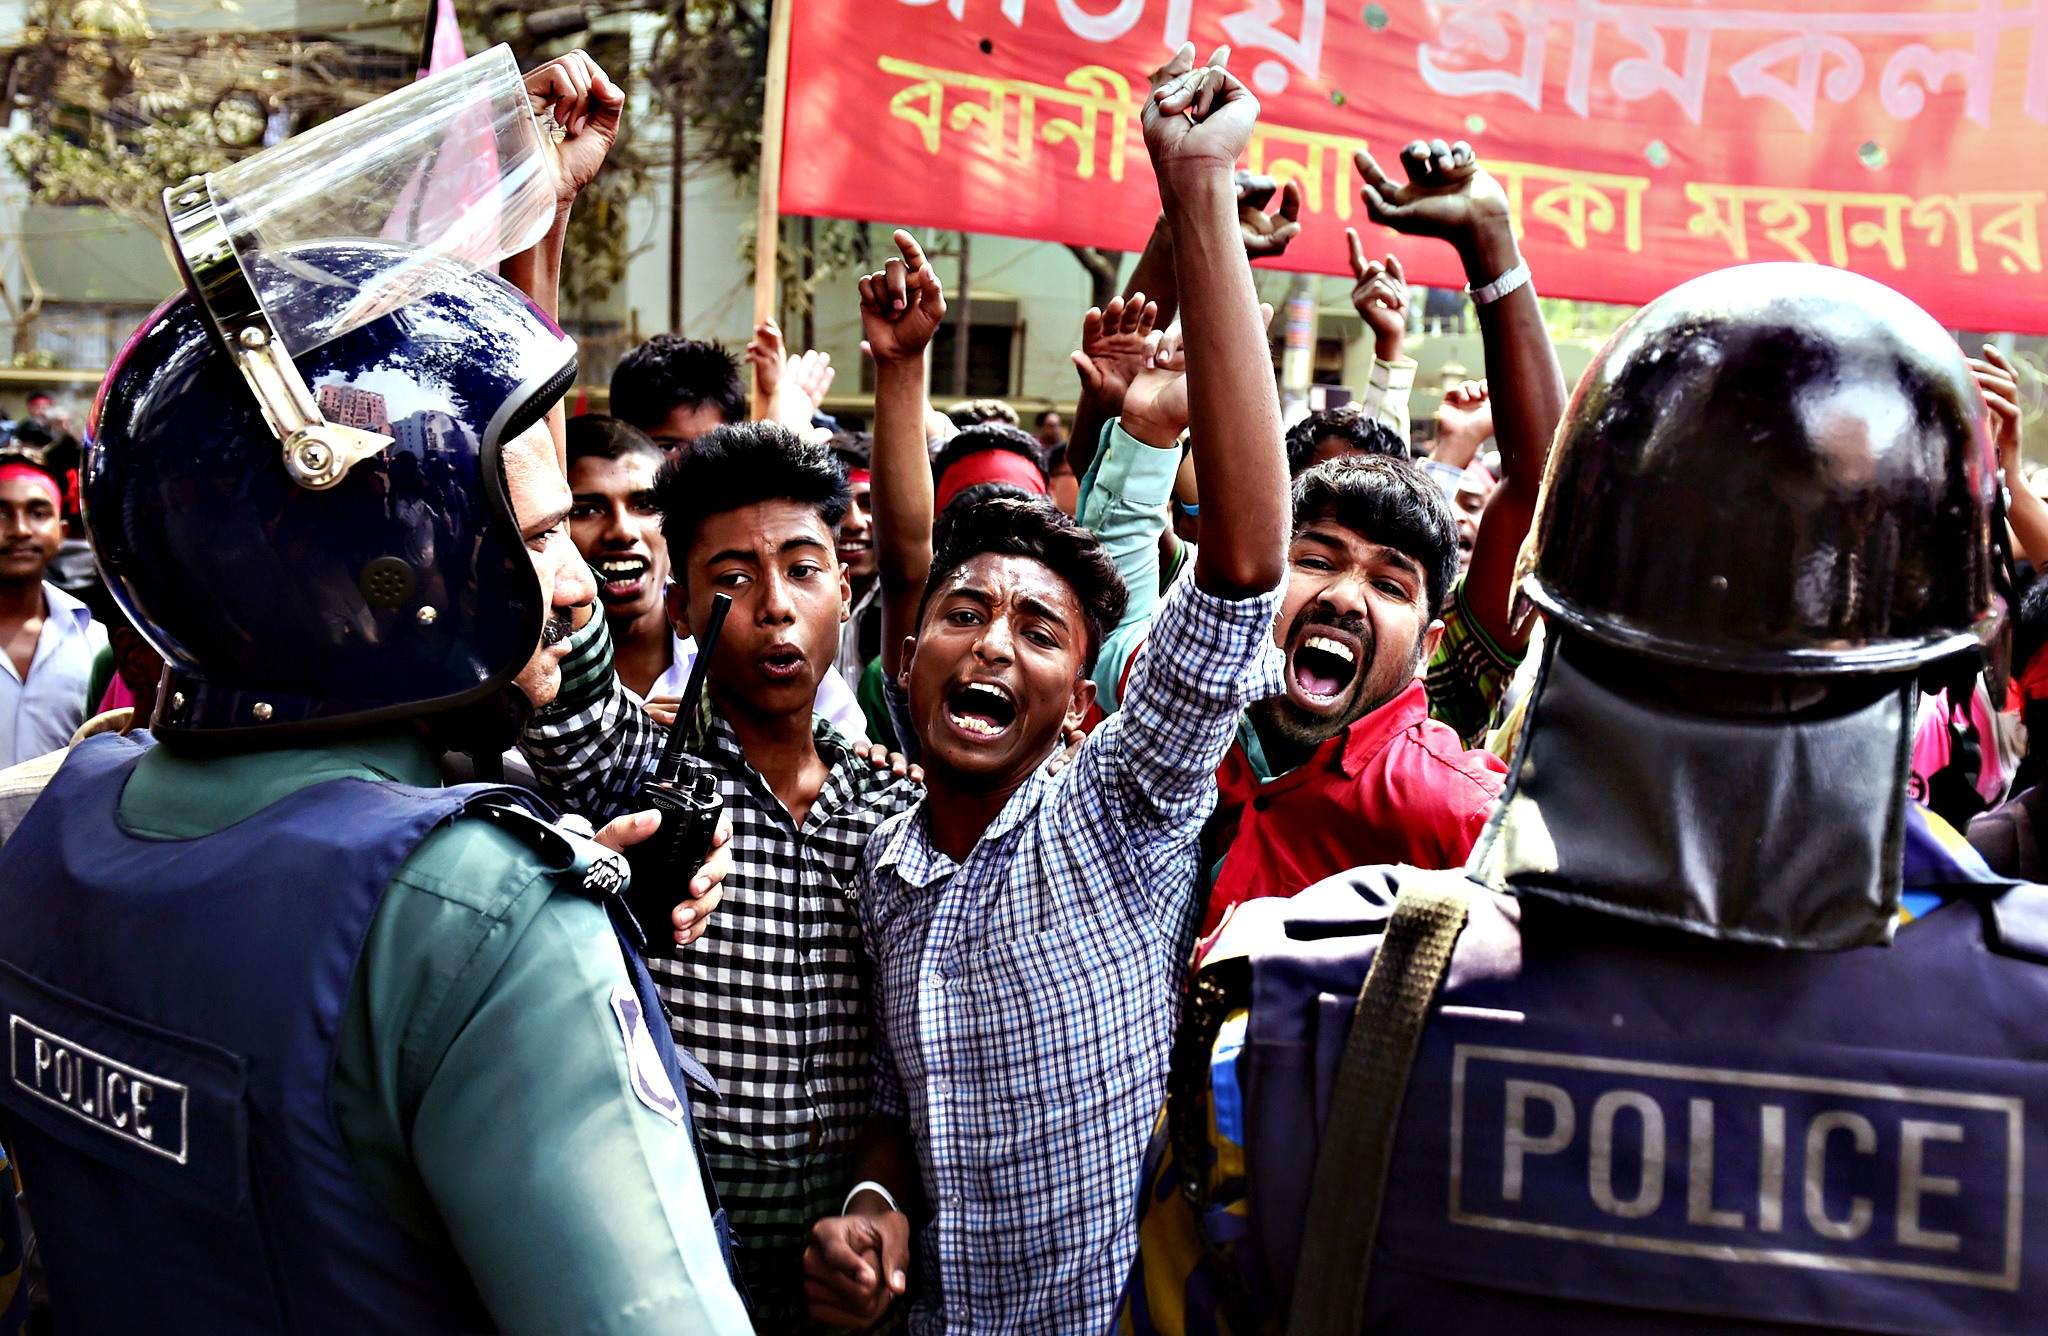 Bangladesh police stop activists from the Road Transport League, a wing of the ruling Bangladesh Awami League as they protest against the on-going nationwide strike outside the Bangladesh Nationalist Party office in Dhaka on February 9, 2015.  Violence triggered by the nationwide strike and blockade of roads, railways and waterways has reportedly left 80 people dead